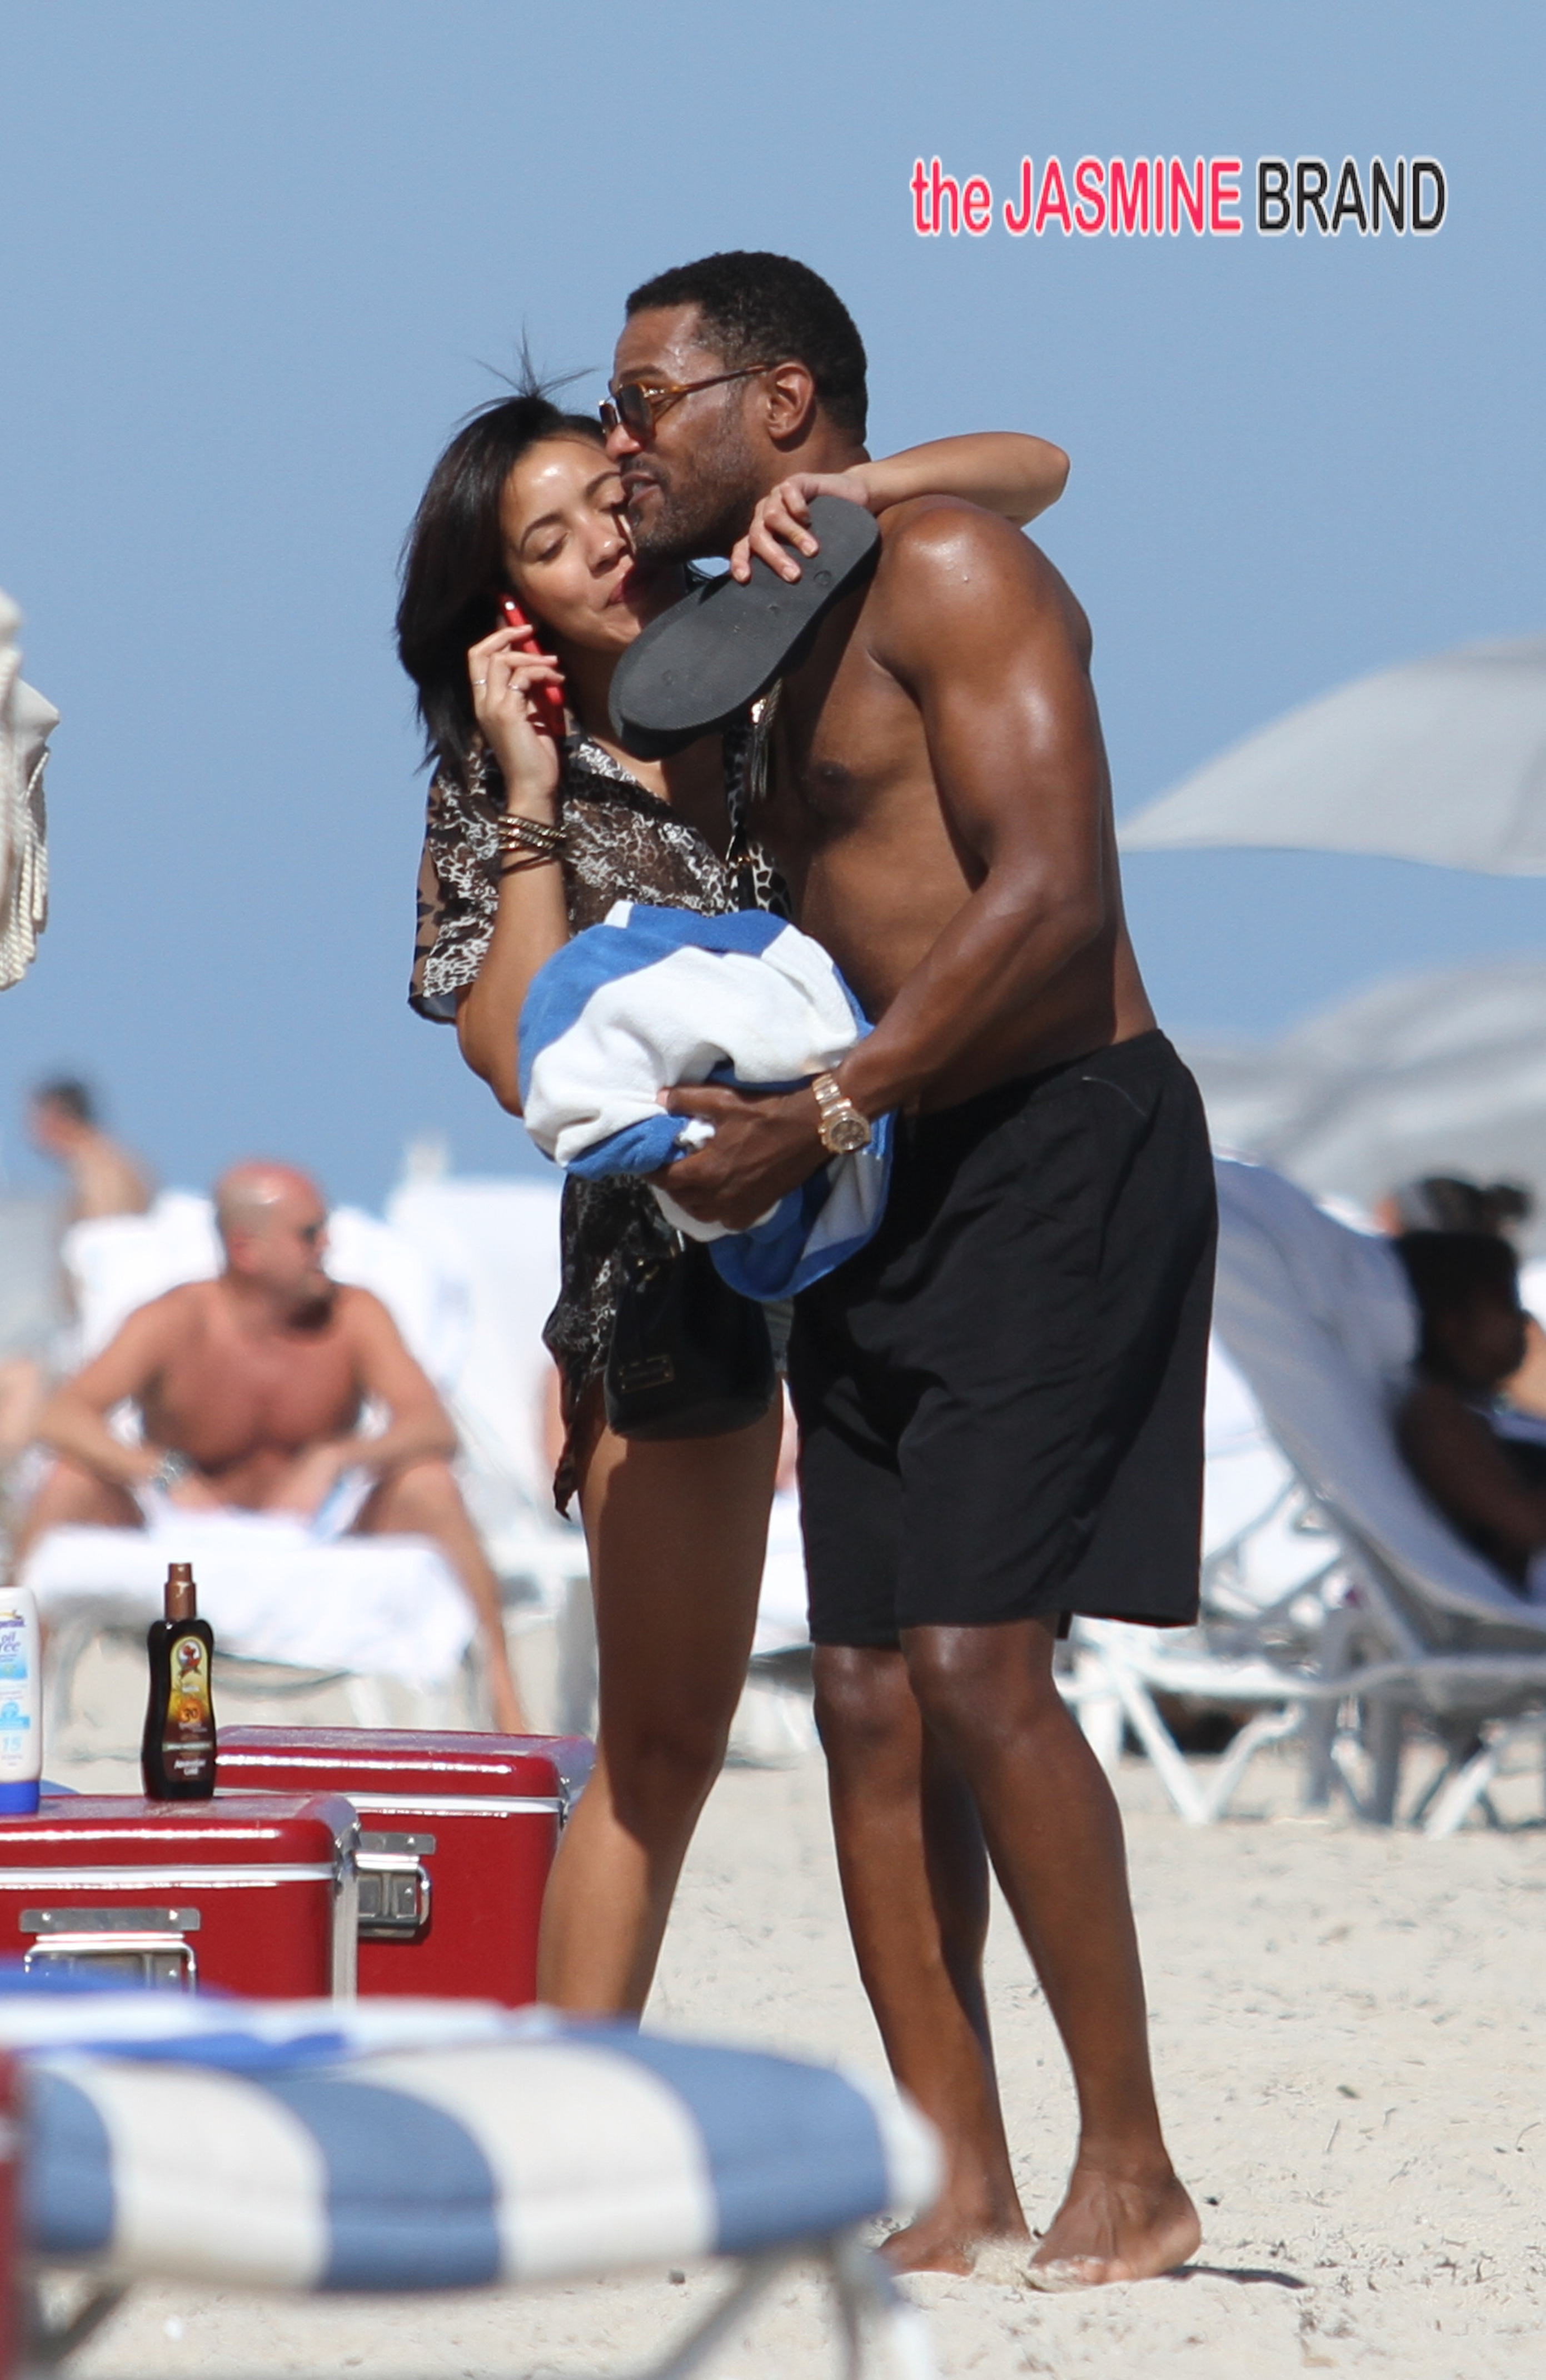 Singer Maxwell and his girlfriend, TV personality Julissa Bermudez, spend a day at the beach in Miami